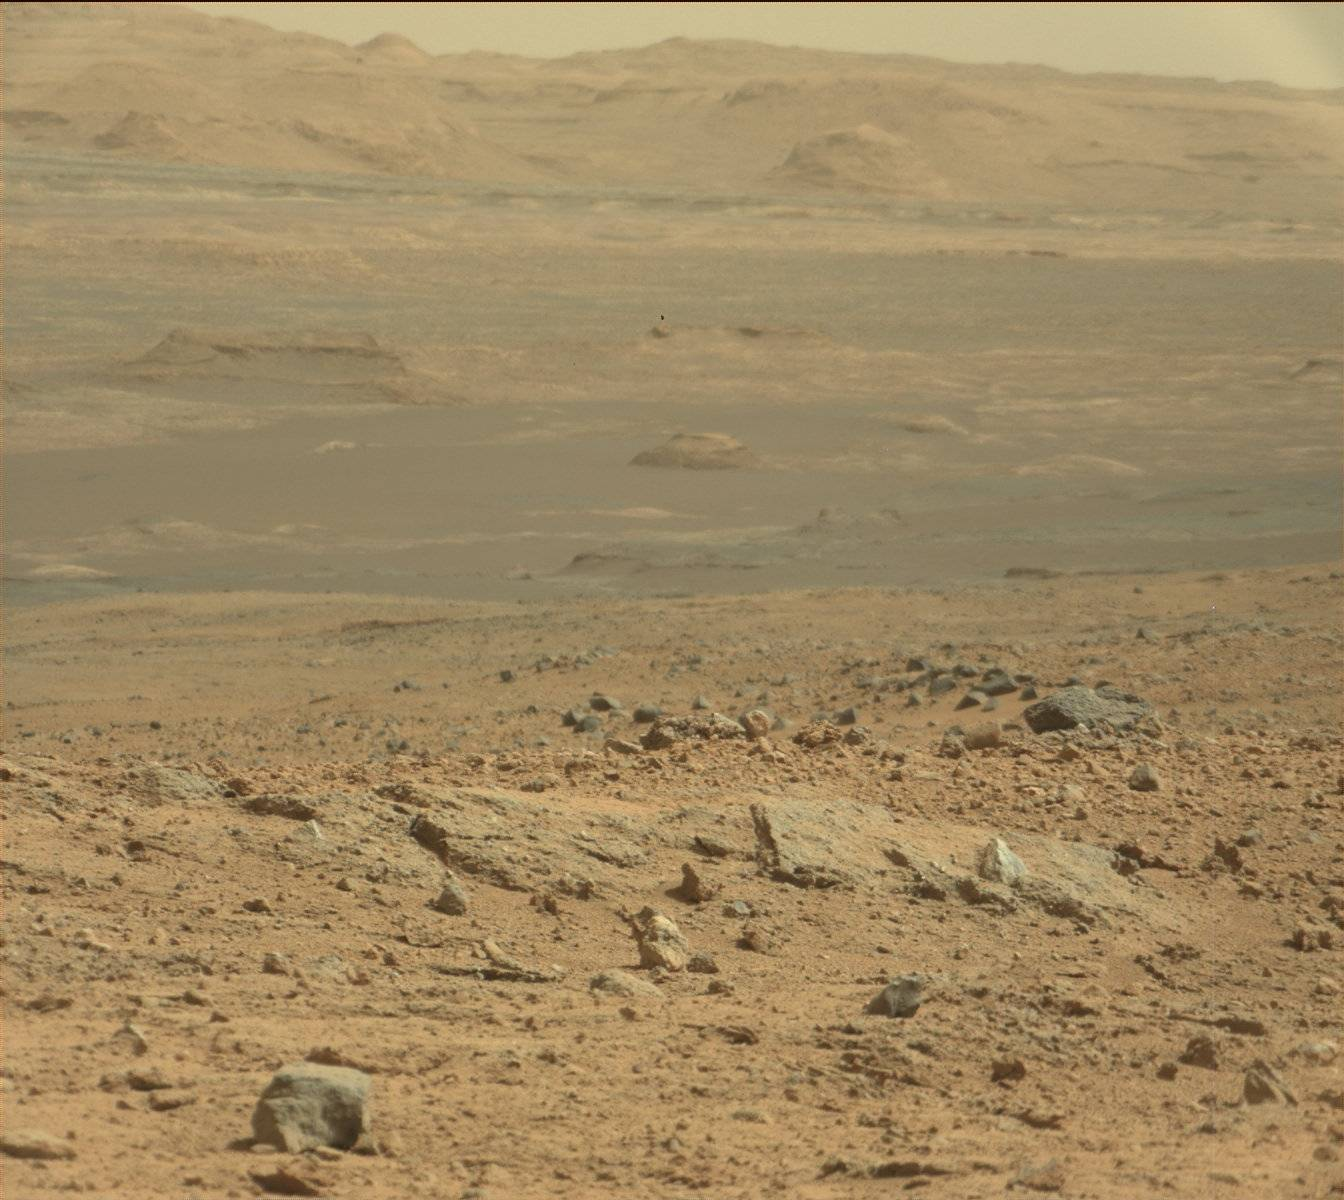 mars rovers destroyed - photo #1